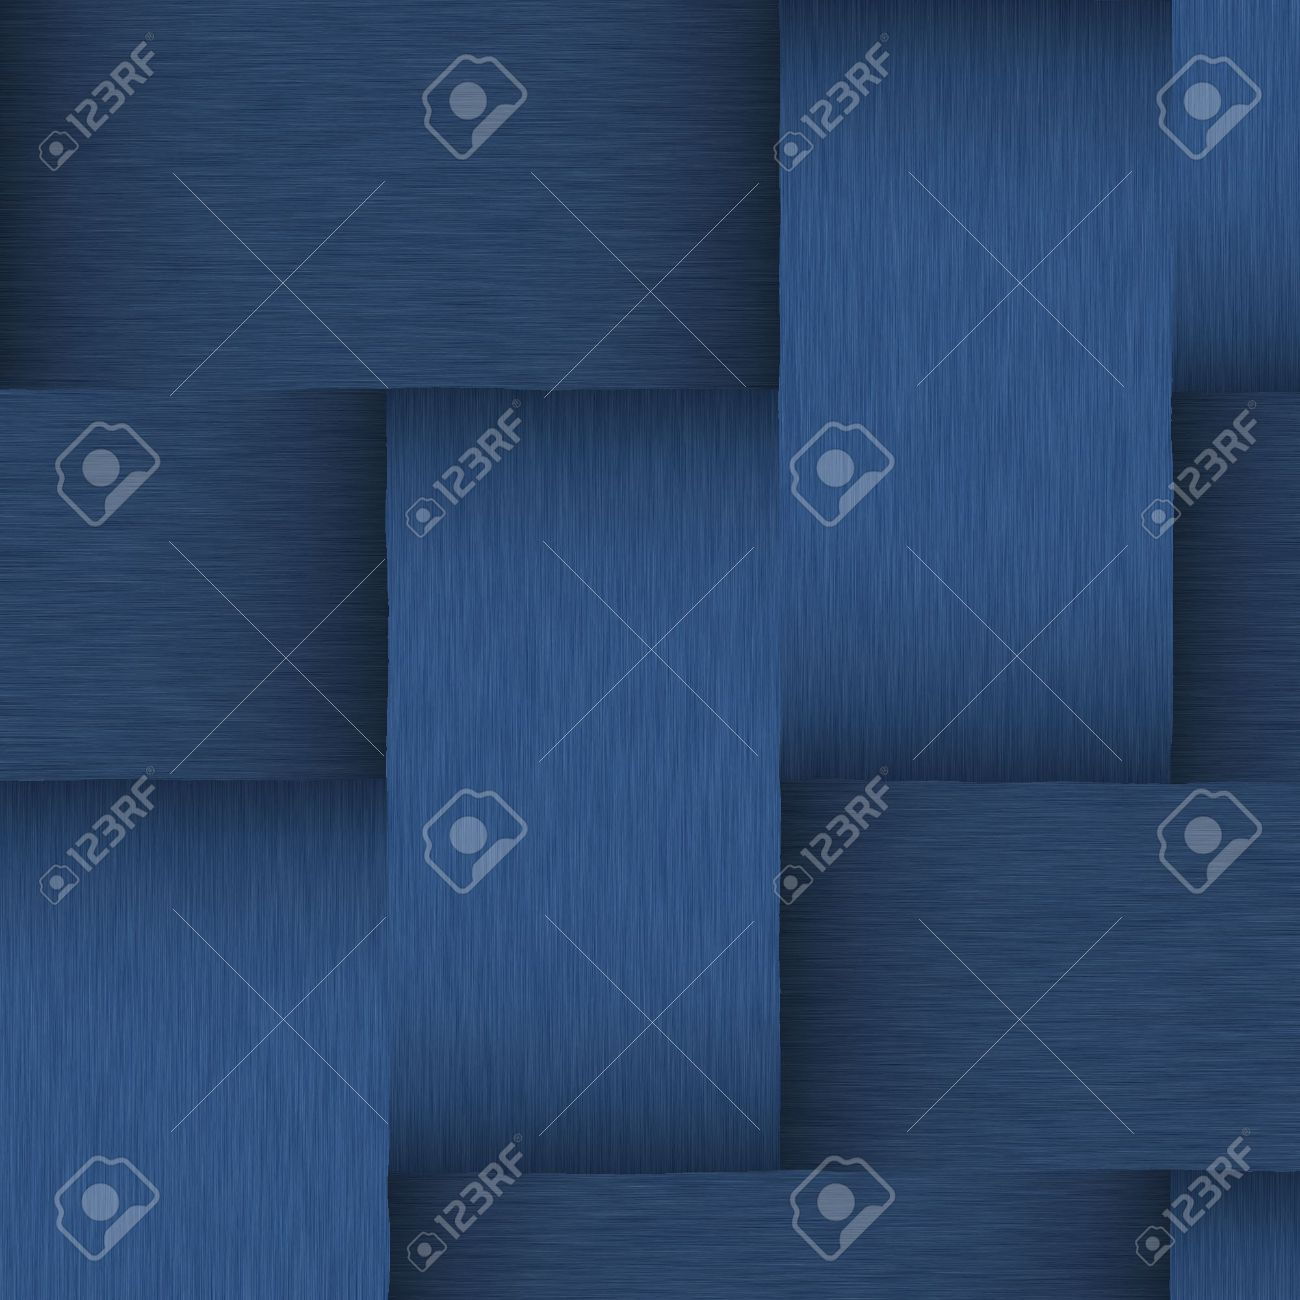 brushed dark blue metallic background with jeans look and colors Stock Photo - 3089941